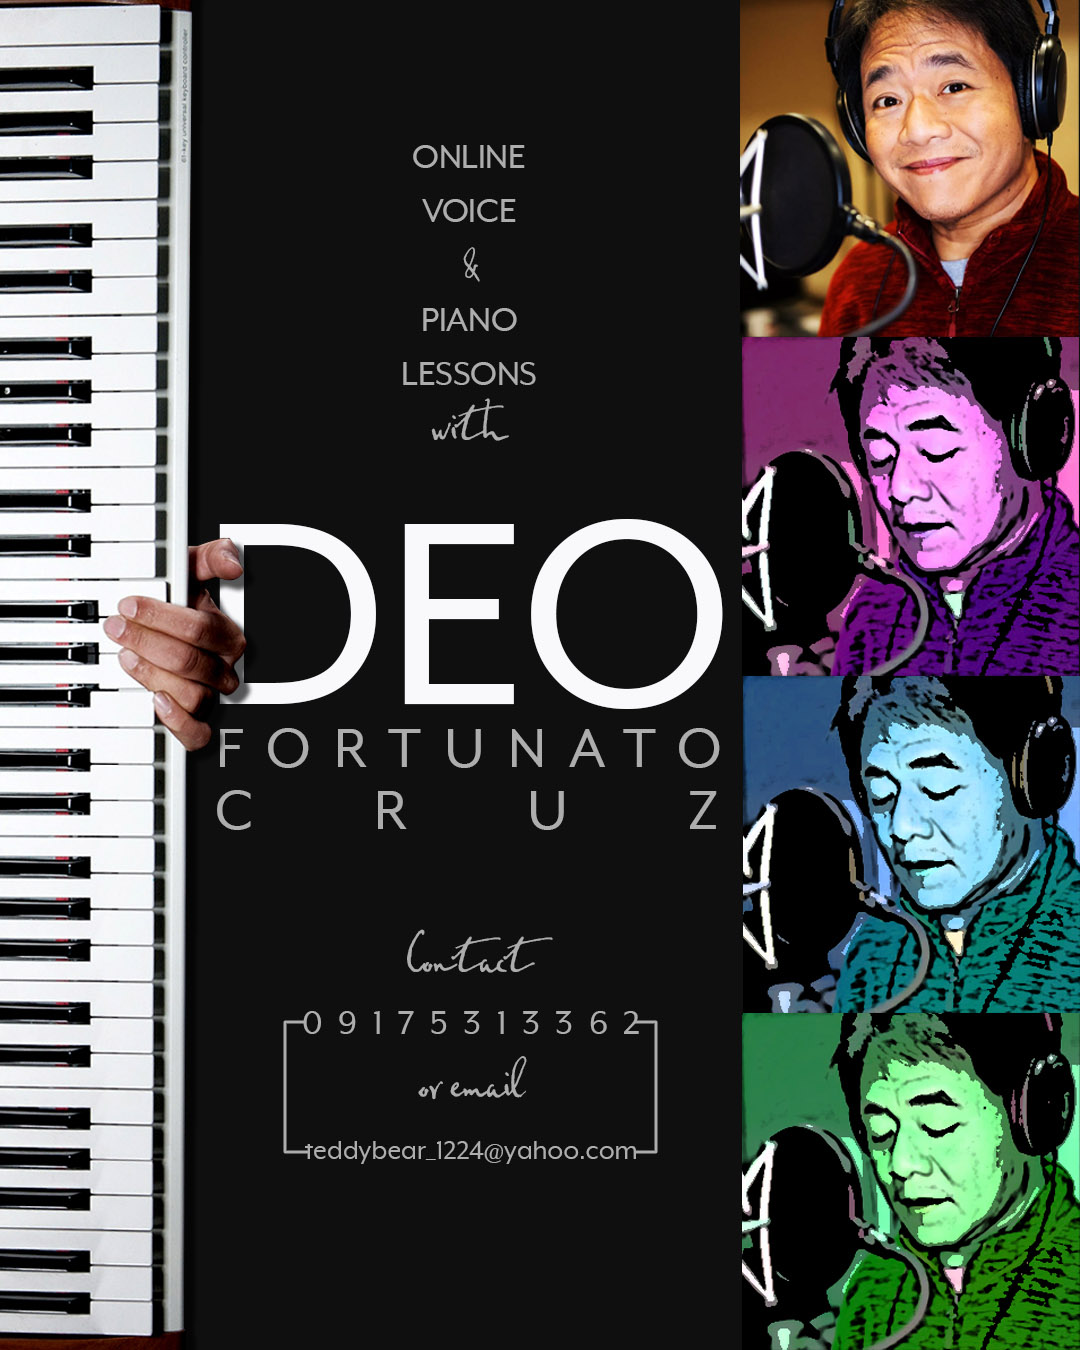 Poster: Deo music lessons